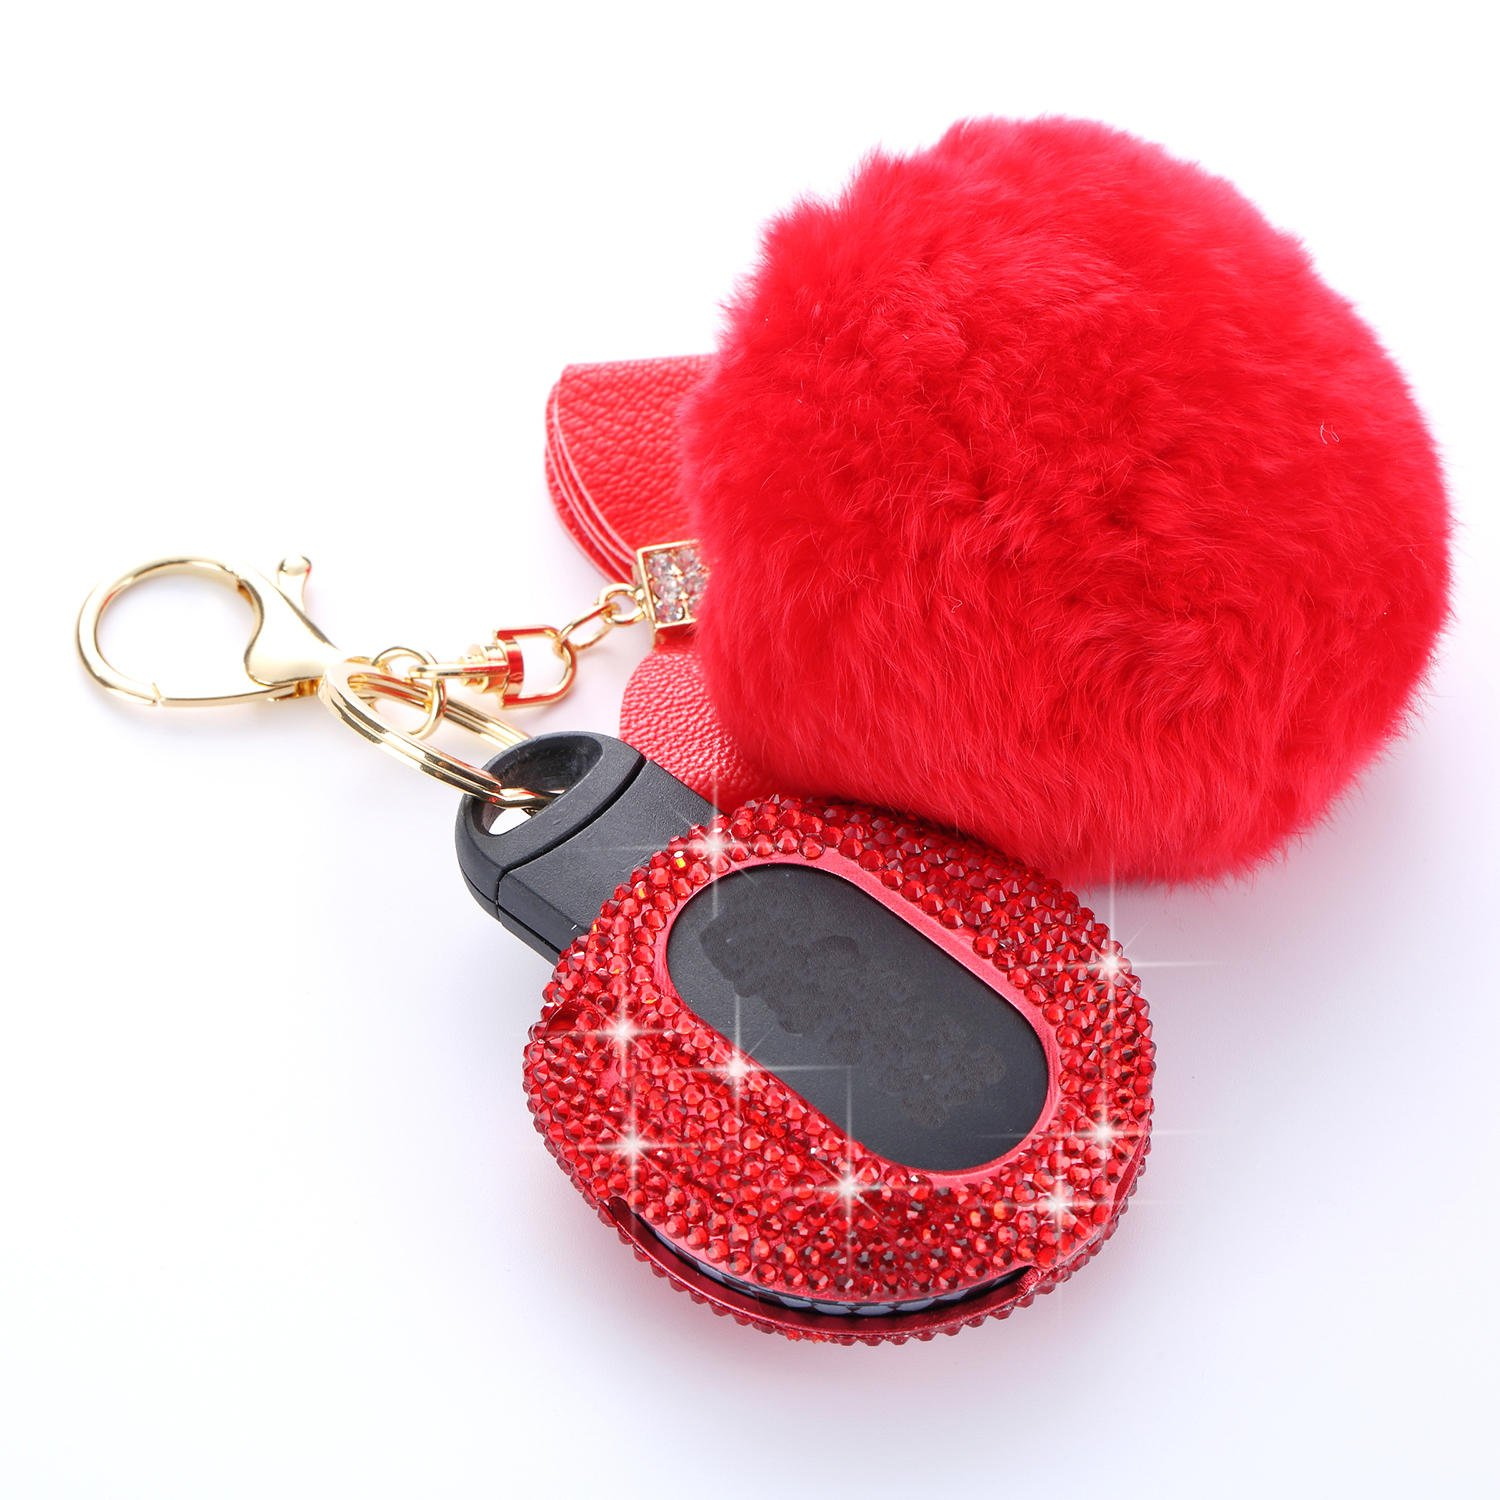 MissBlue Handmade Crystal Key Fob Case For BMW Remote Key Aircraft Aluminum Protector Cover Fits BMW Mini Cabrio Clubman Countryman Cooper S JCW Silver Diamond Key Fob Keychain for Women for Girls